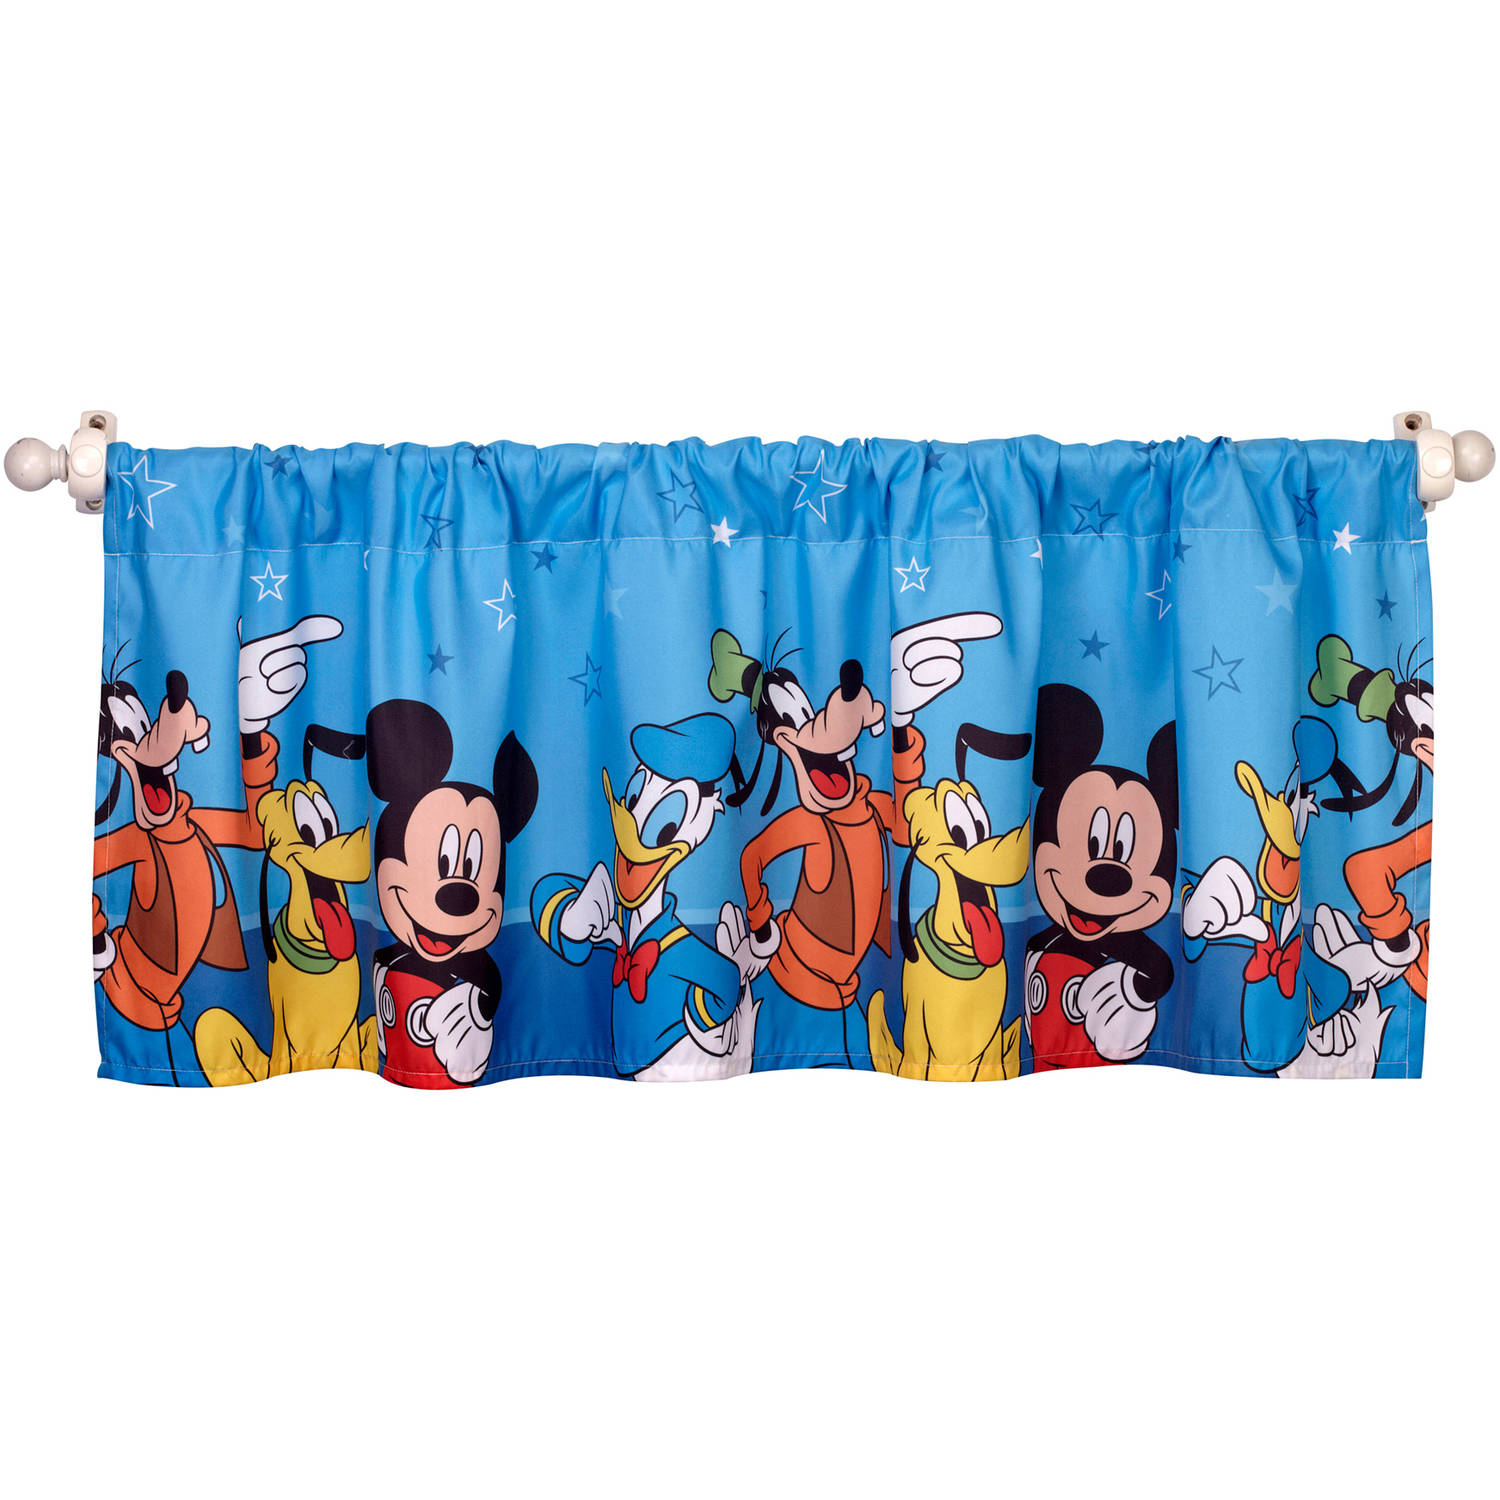 Disney Mickey Mouse Window Valance